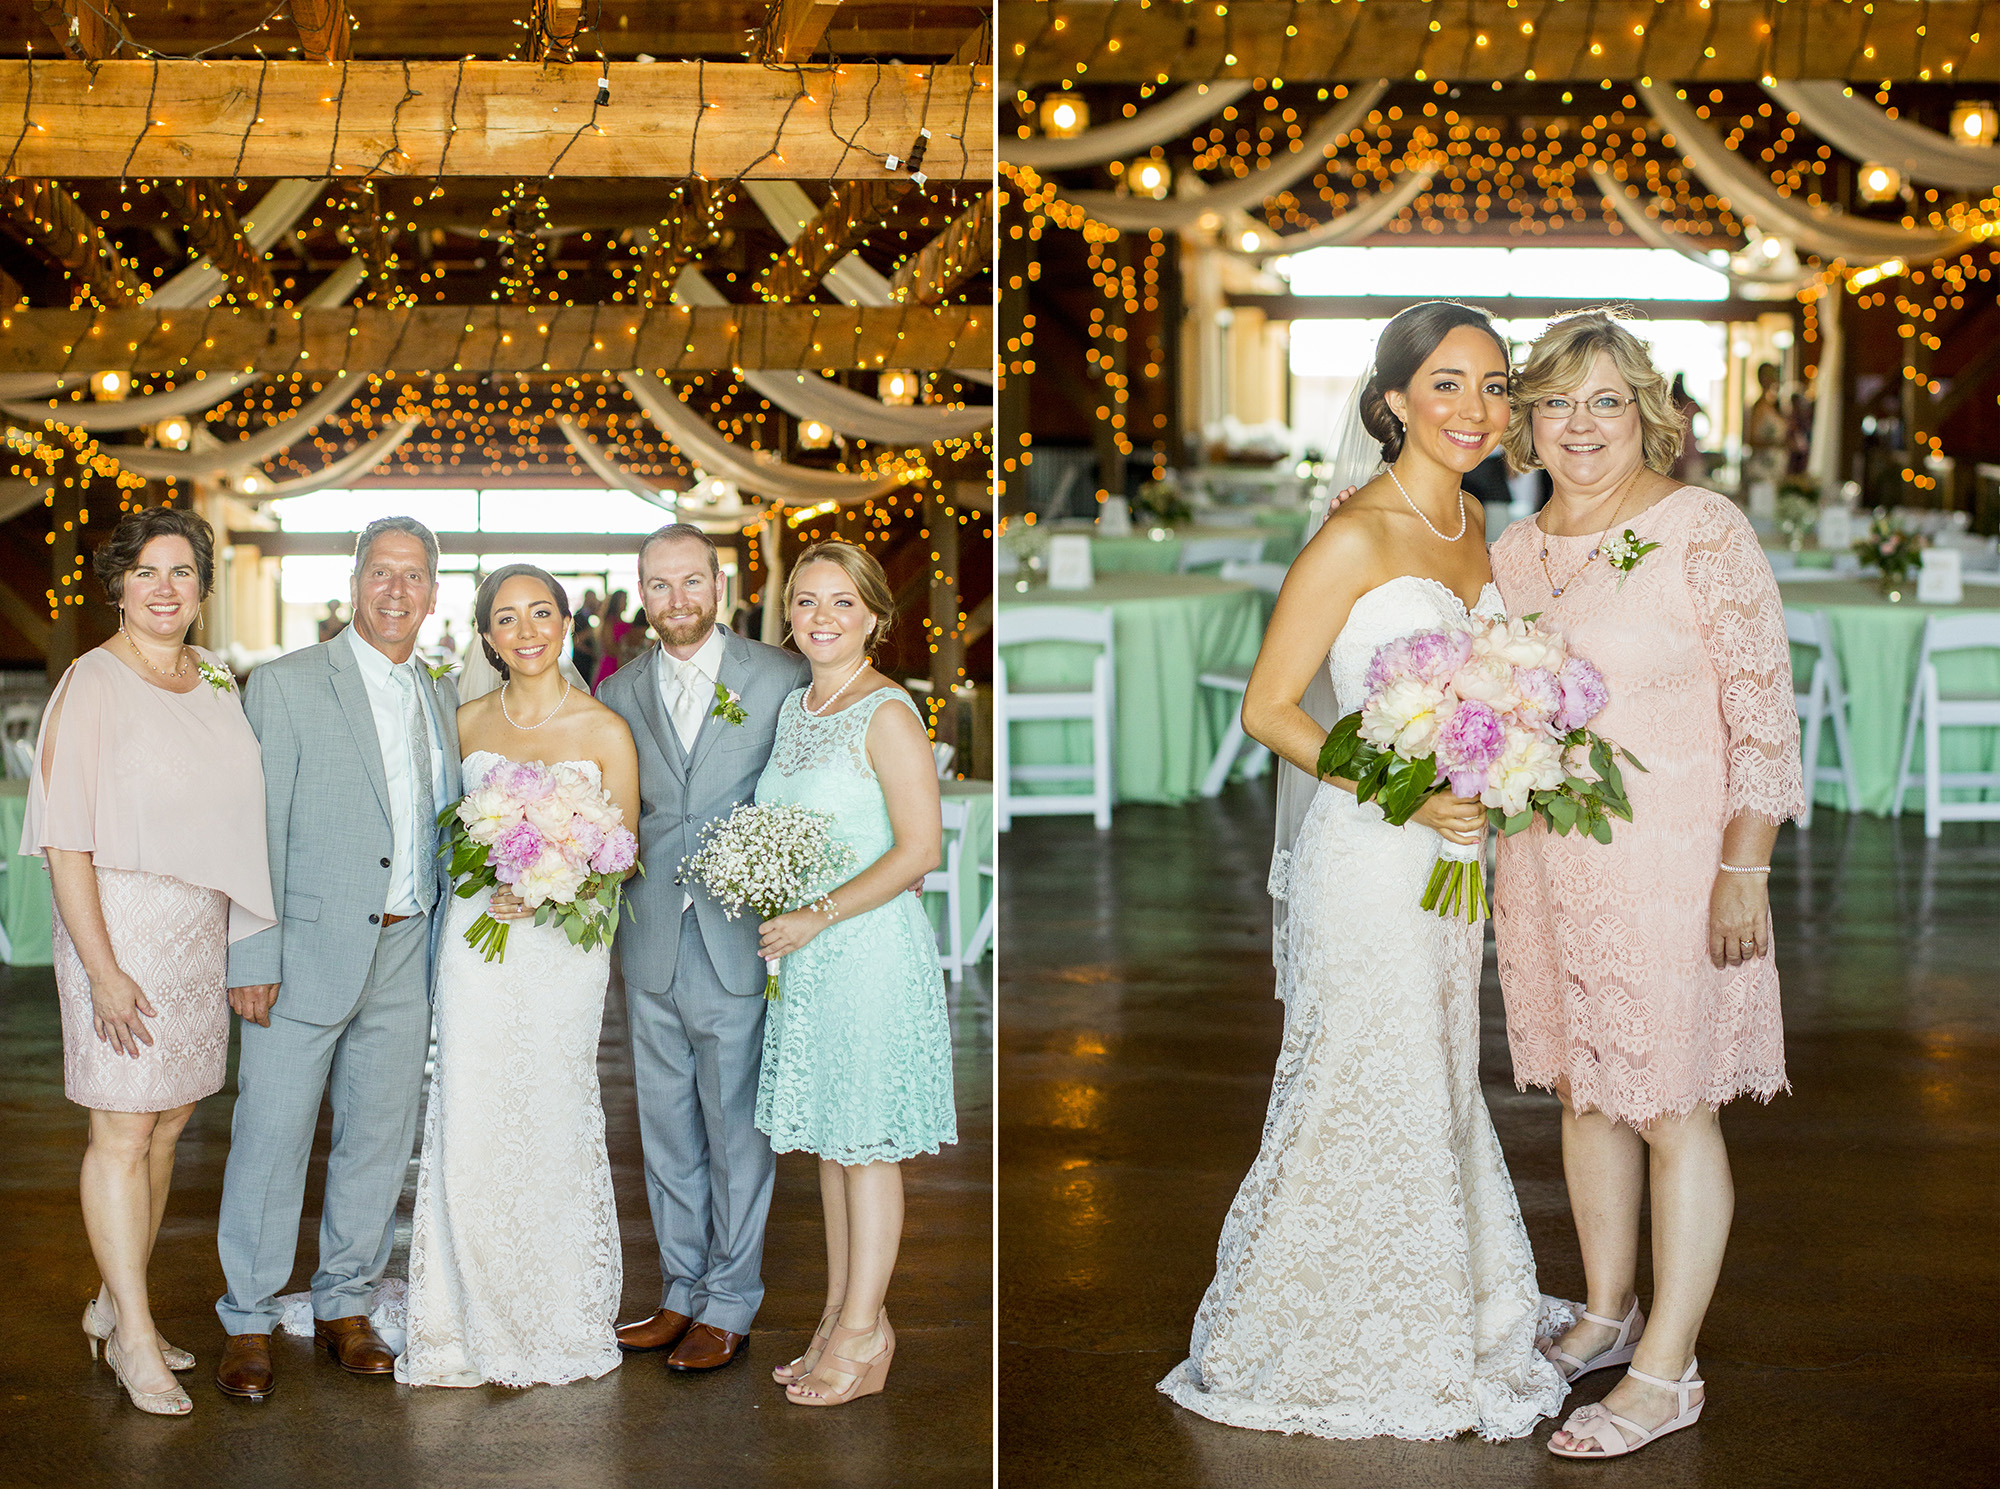 Seriously_Sabrina_Photography_Lexington_Kentucky_Talon_Winery_Wedding_Kjellsen74.jpg